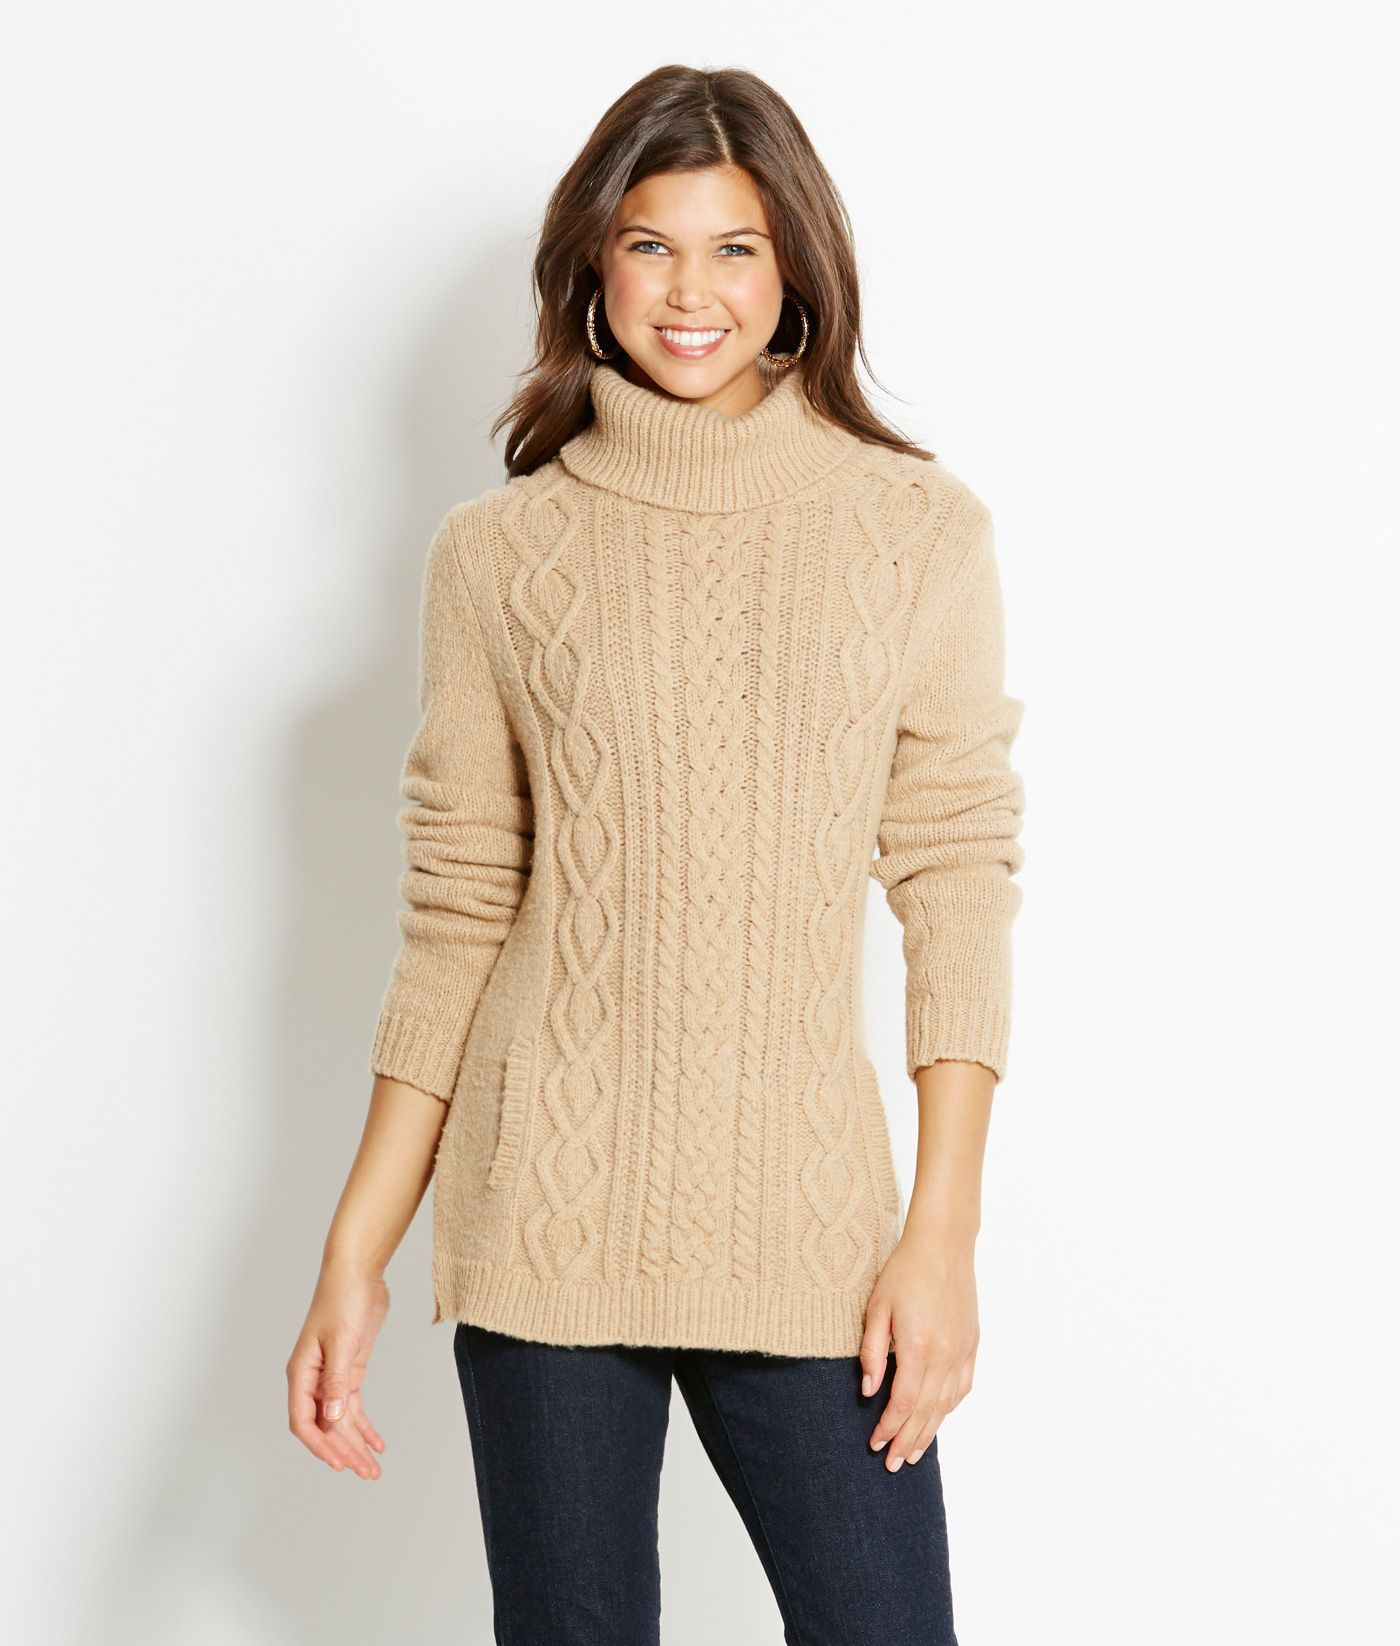 Shop Sweaters: Cable Turtleneck Sweater for Women | Vineyard Vines ...